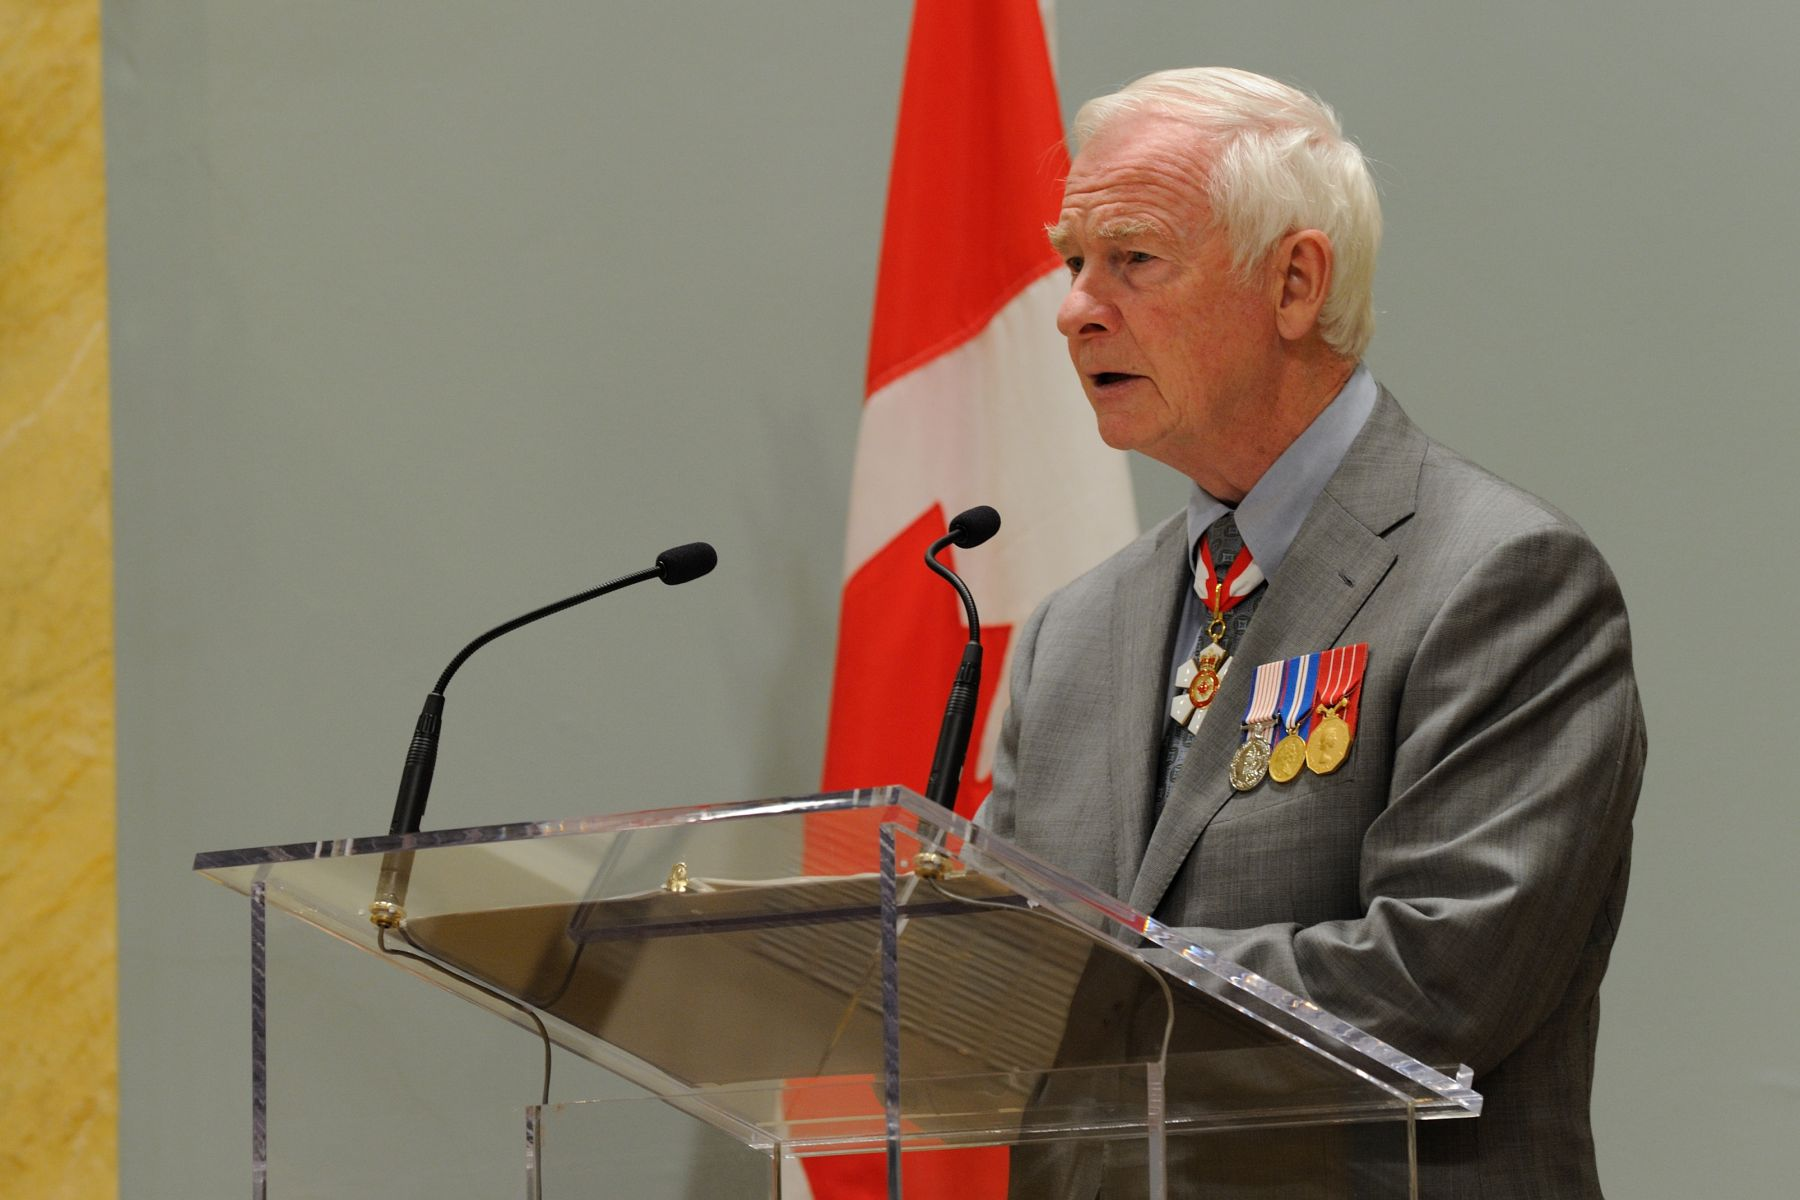 """The creation of this medal came from wanting to honour those men and women of the Canadian Forces and Canadian police forces, as well as civilians who work with these two groups, who have supported non-combat missions around the world. Anytime Canada is called upon to serve abroad, we have done so with the support of an amazing array of talented and selfless people."""